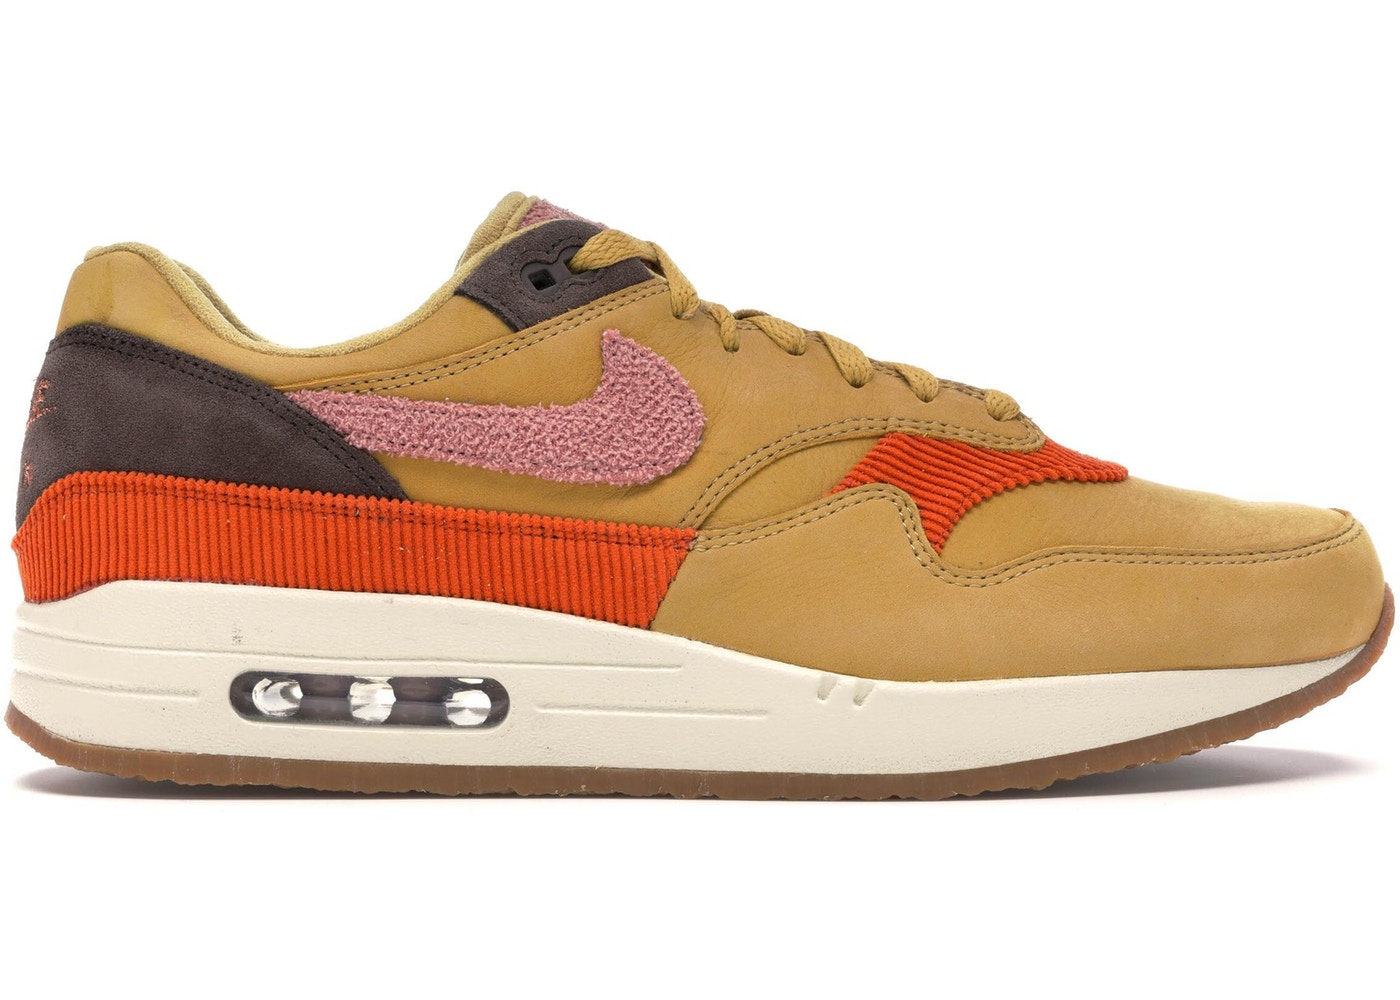 new styles 53cf8 b3dc8 Air Max 1 Crepe Wheat Gold Rust Pink - CD7861-700